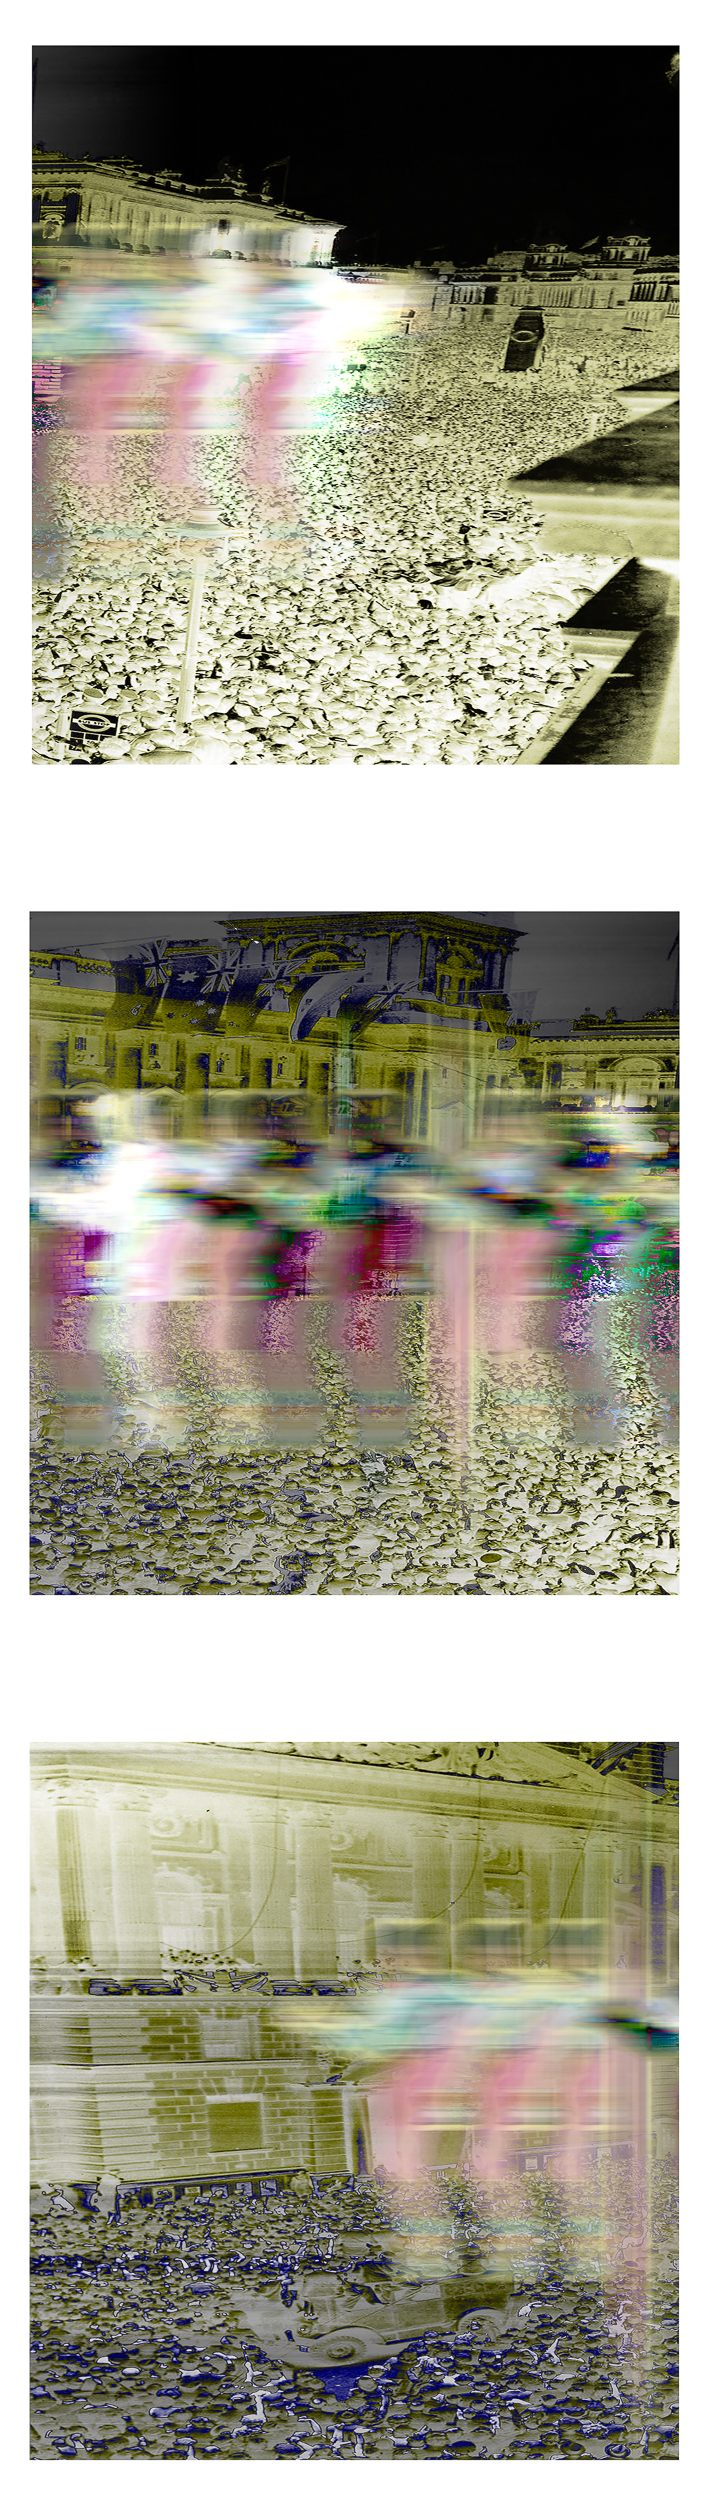 """World War II: Electric Boogaloo (Edition 1,2,3)   2016  Archival pigment print mounted to Dibond  42""""H x 12""""W inches"""